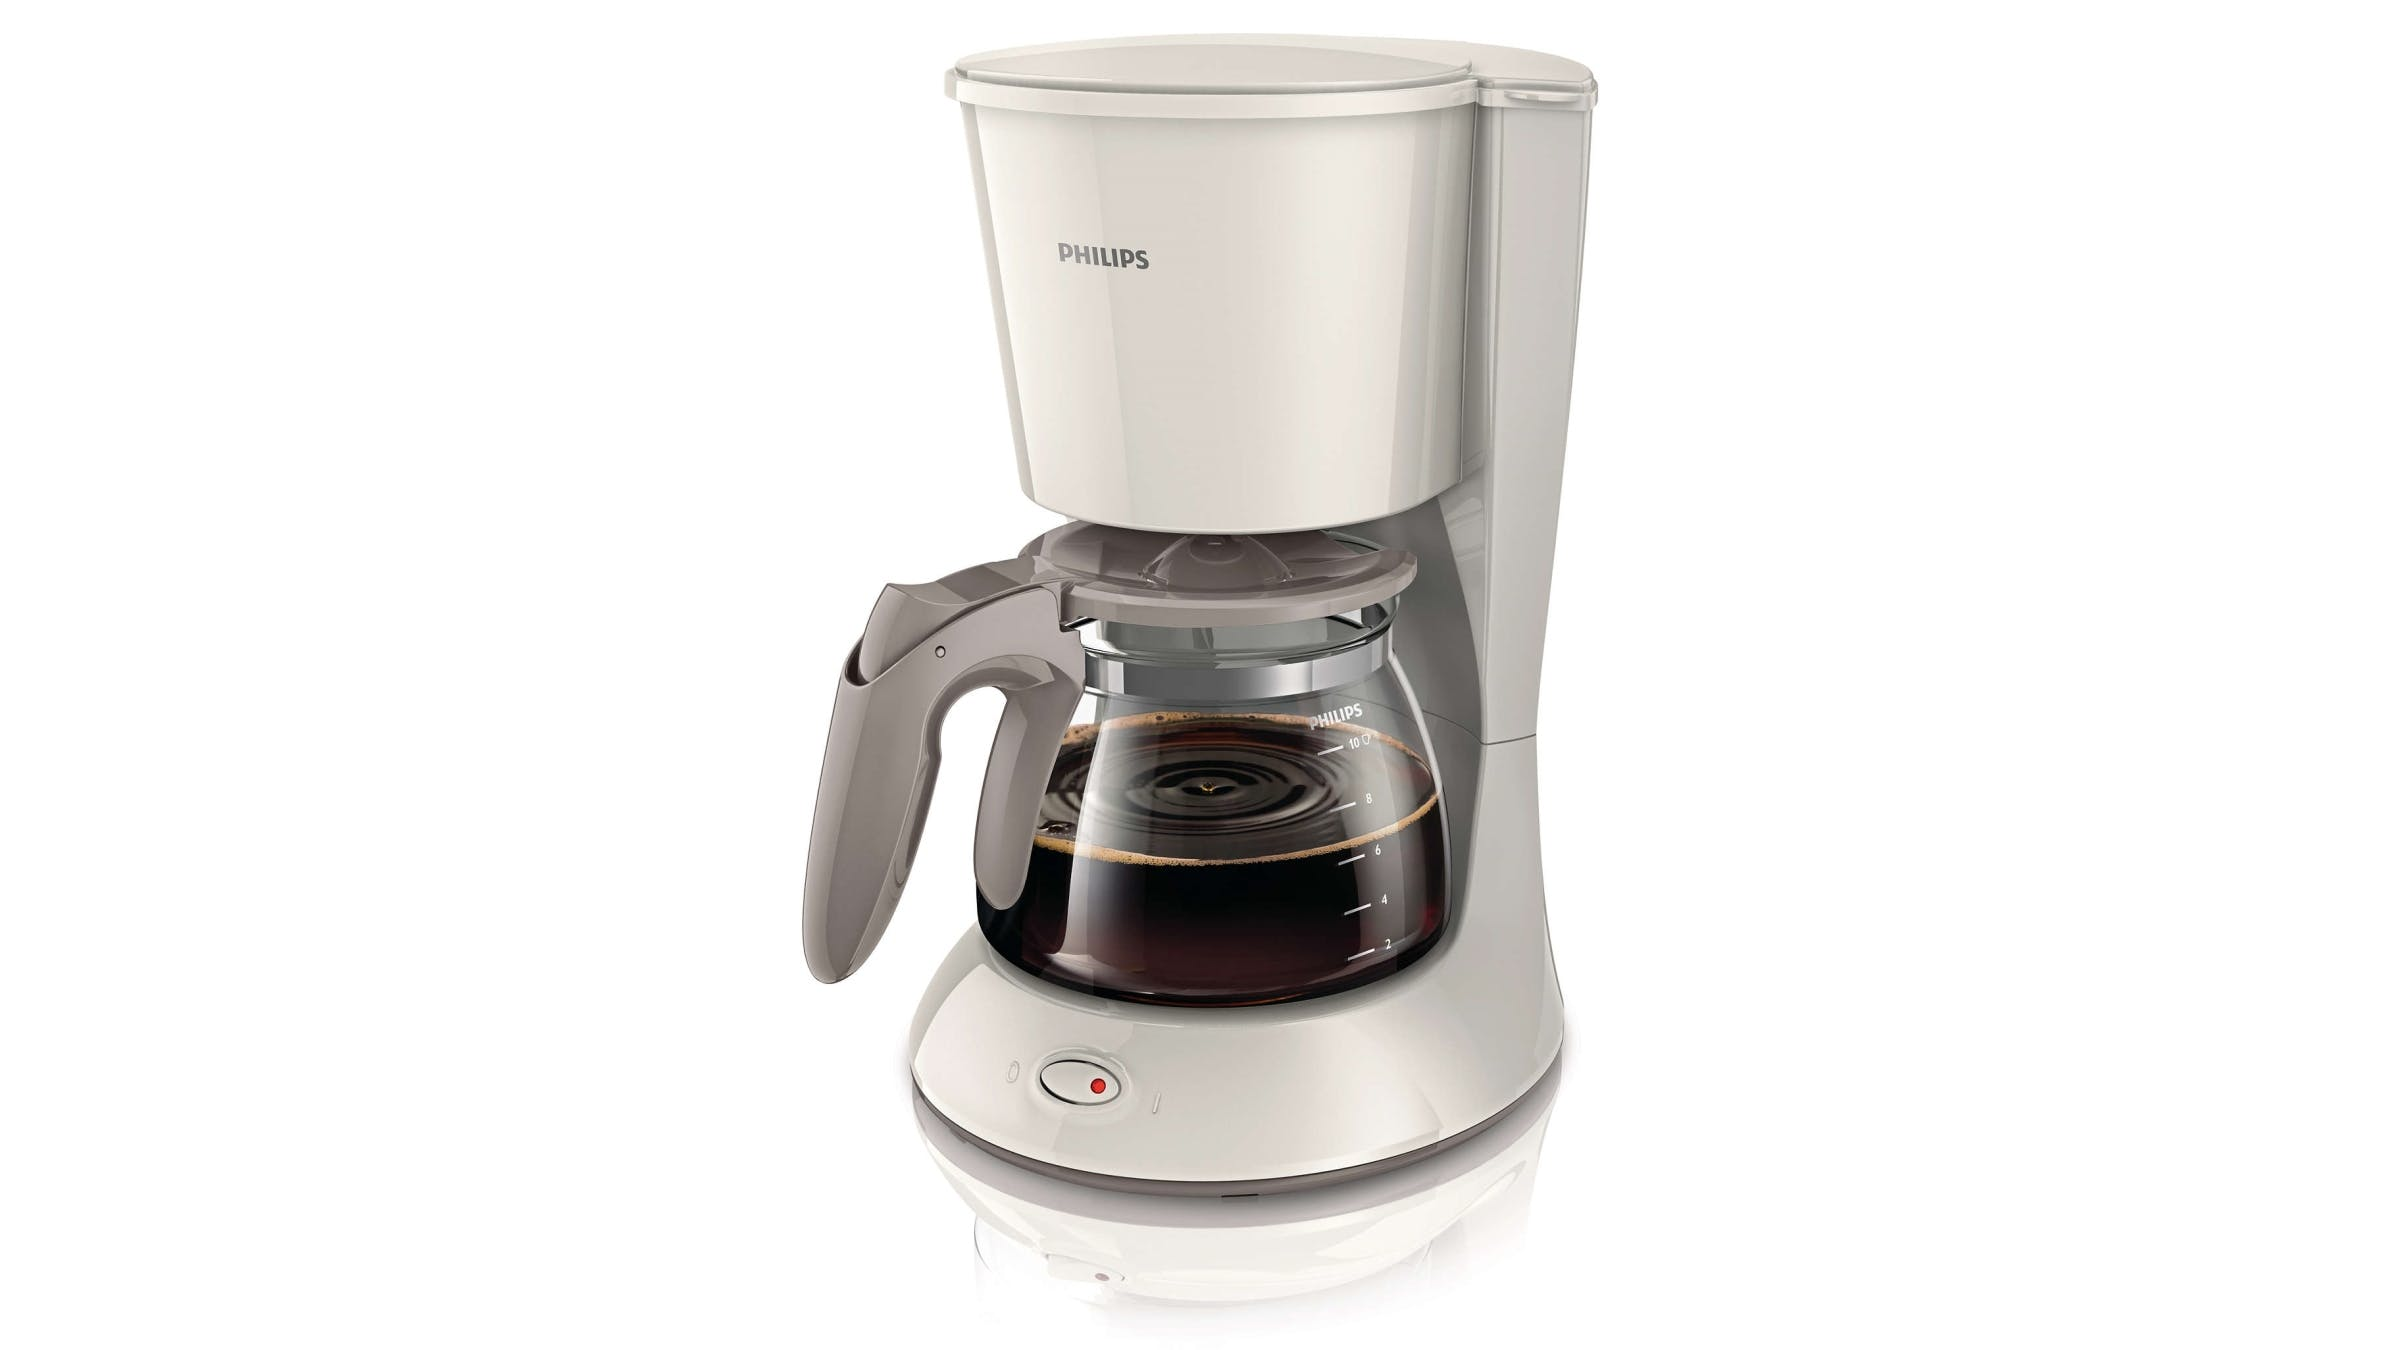 Philips Daily Coffee Maker : Philips HD-7447 Daily Collection Coffee Maker Harvey Norman Singapore